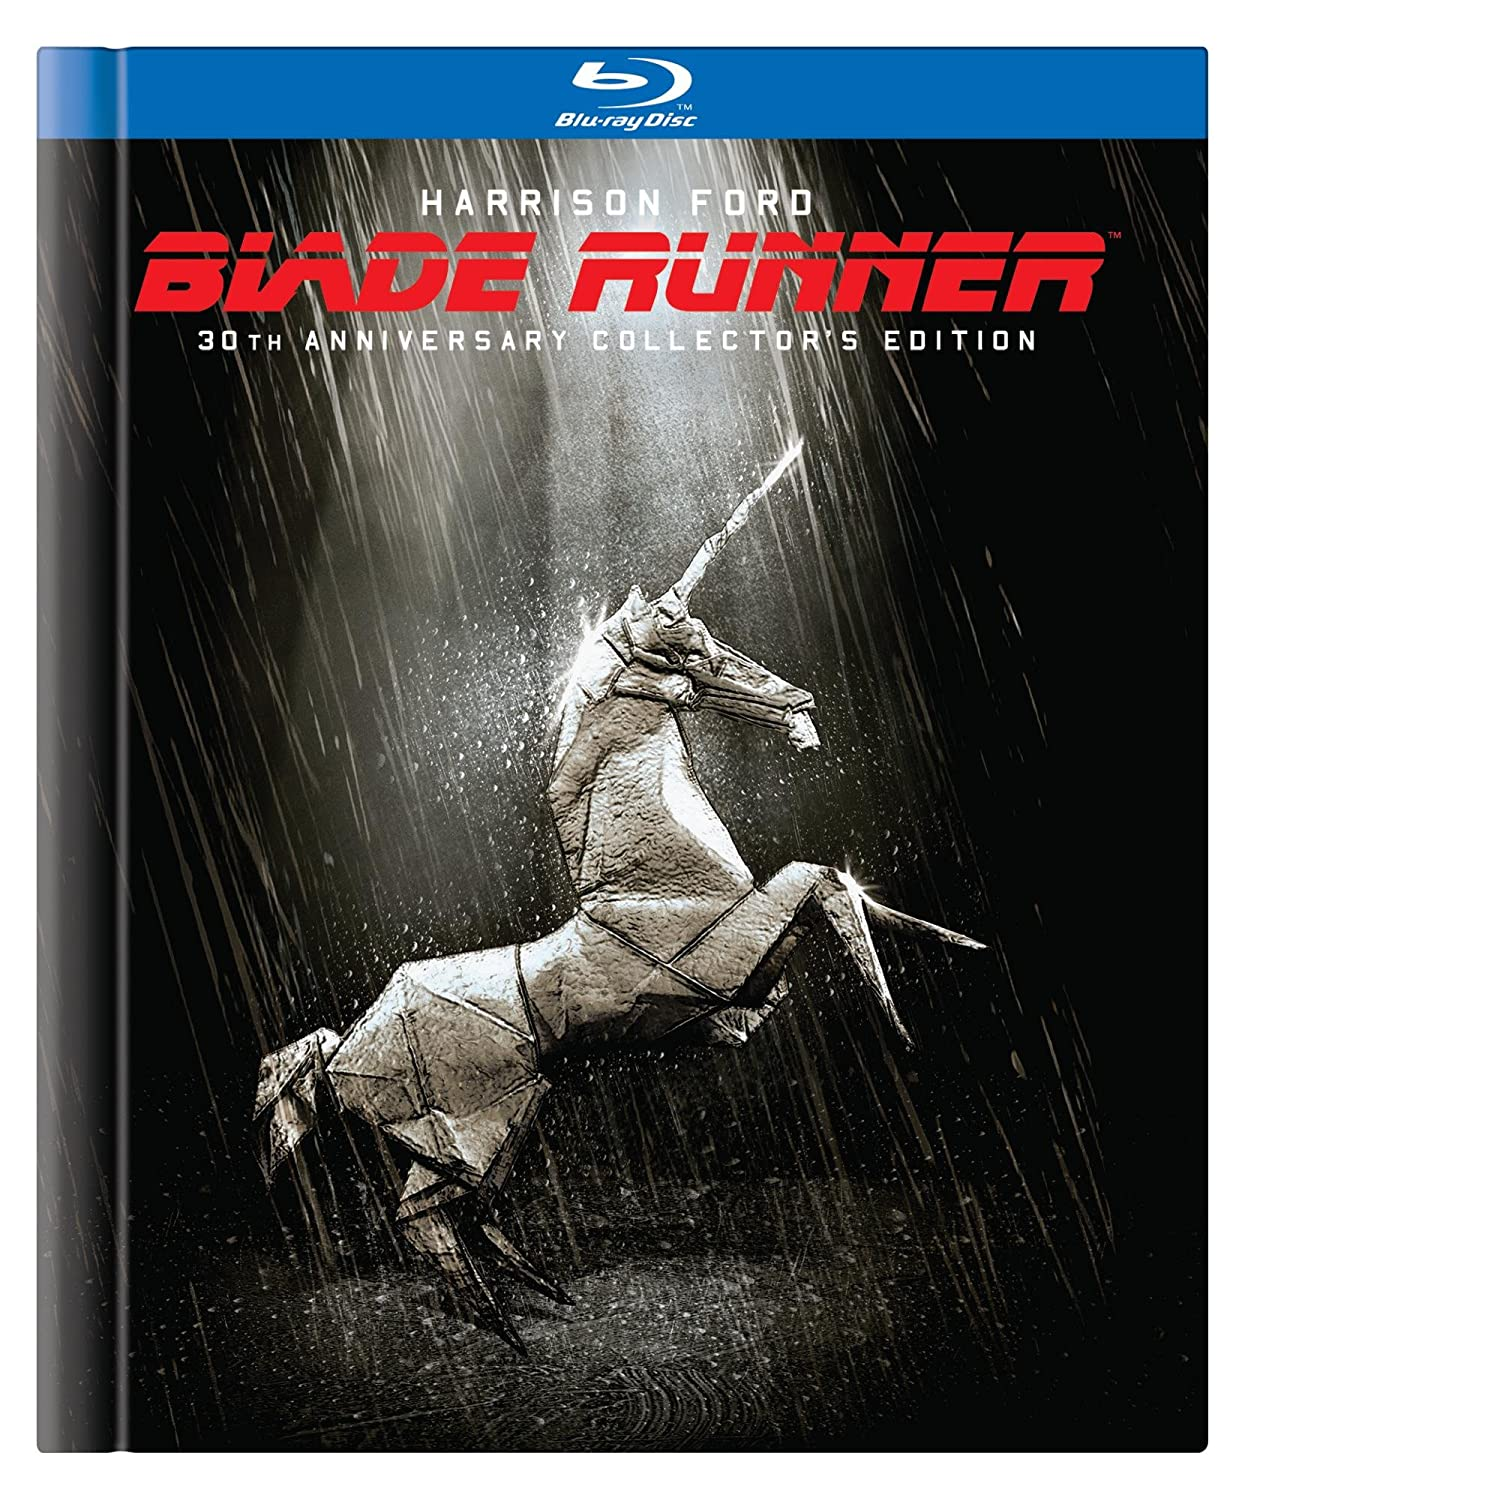 Blade Runner 30th Anniversary Collector's Edition 912BRWIrIaL._AA1500_